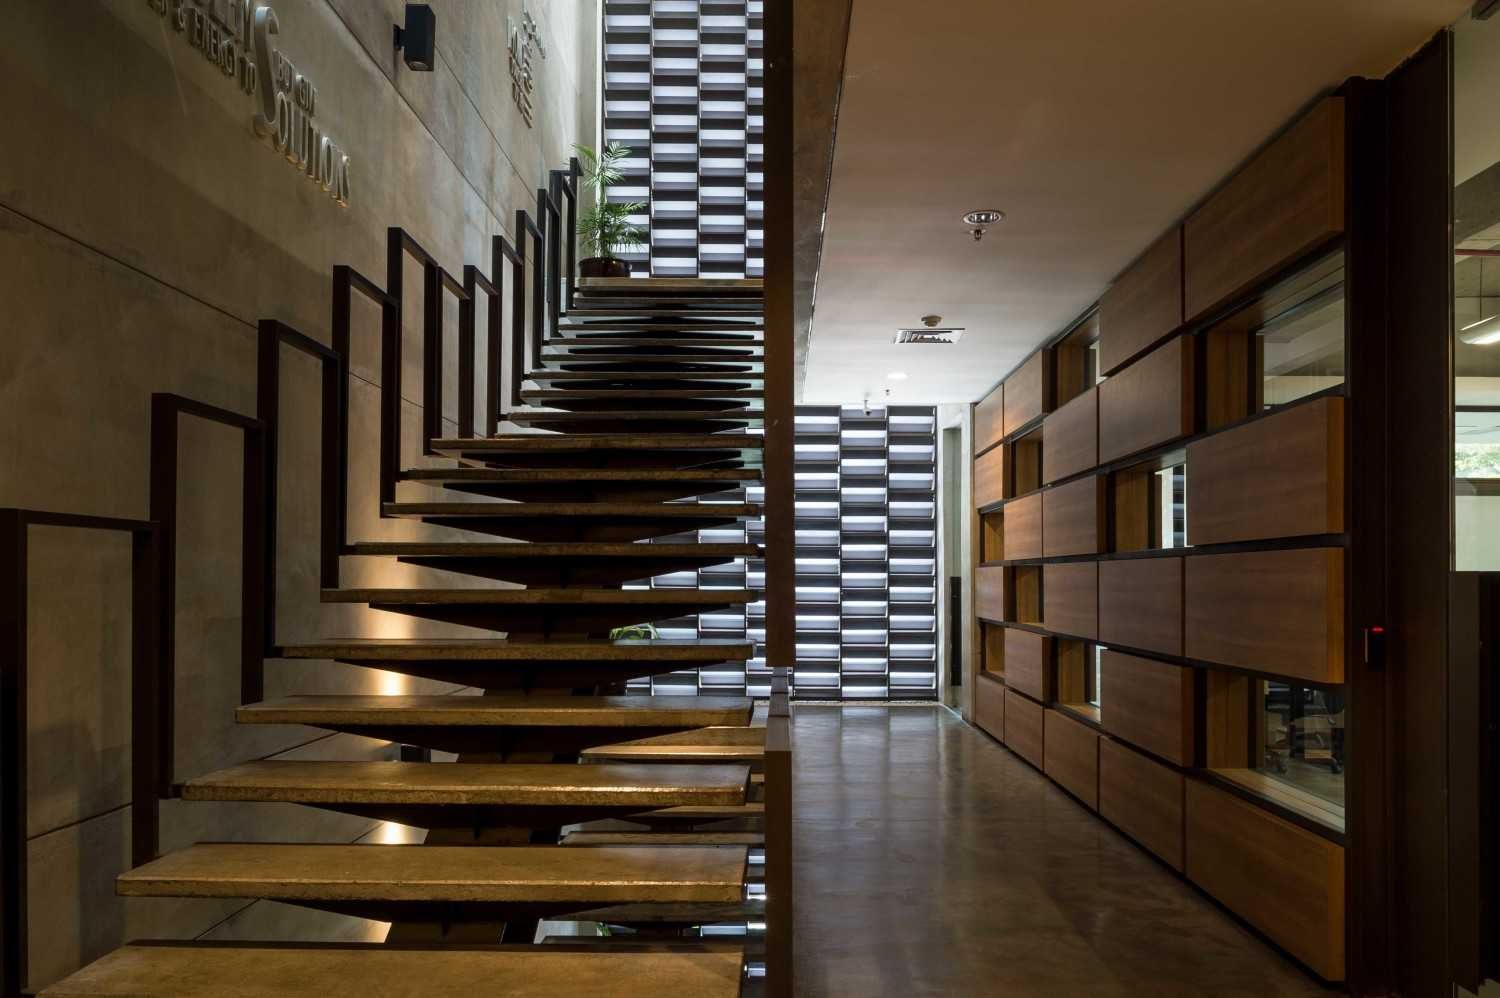 Hmparchitects Galileo Breezeway Central Jakarta, Indonesia Central Jakarta, Indonesia Galileo Stairs Modern 10238